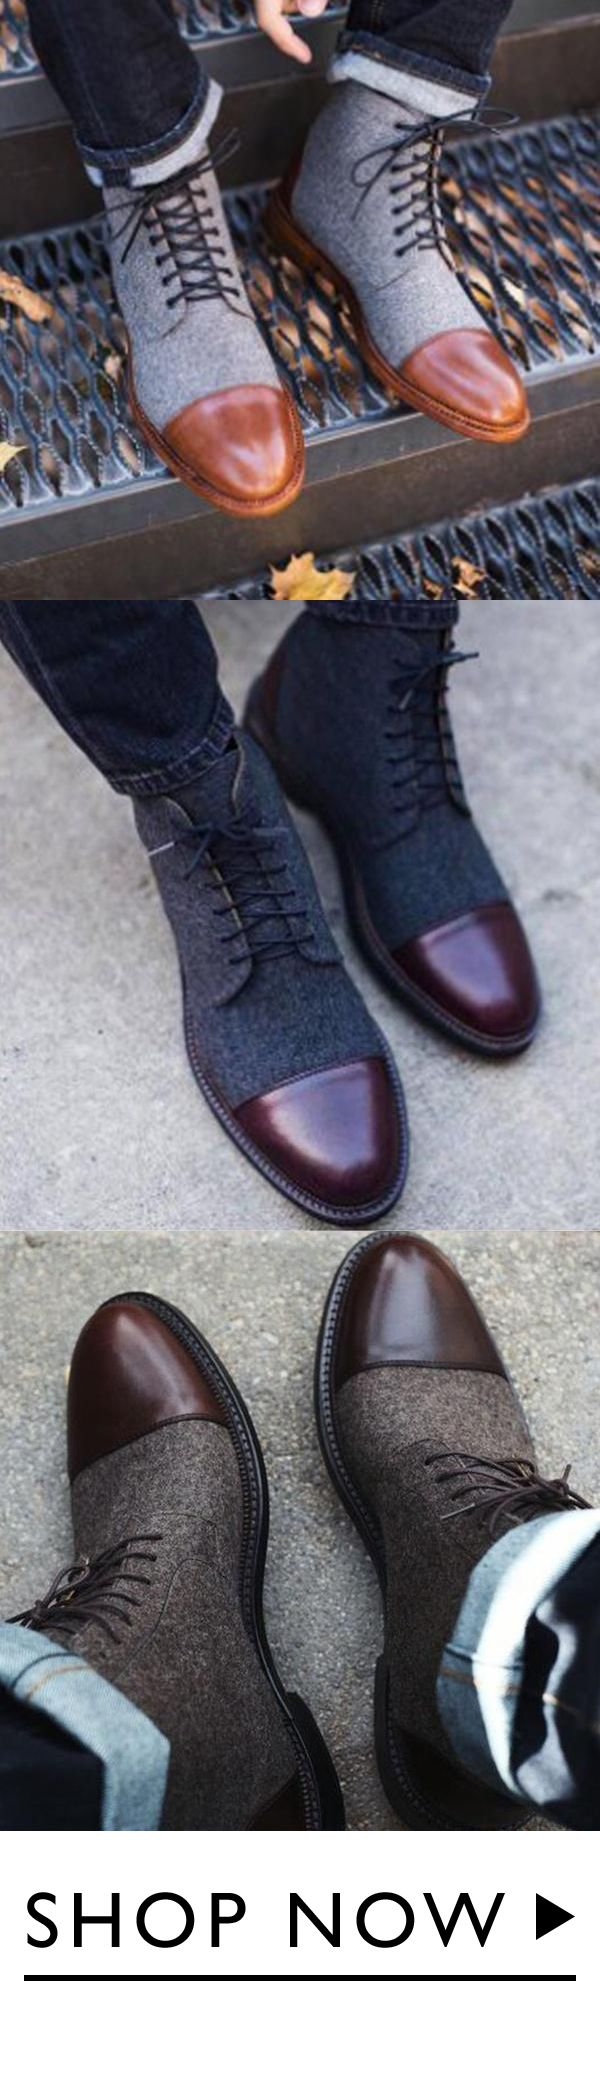 f879eabee1a1 Casual Business Men 's Ankle Boots | Things to wear | Shoe boots ...